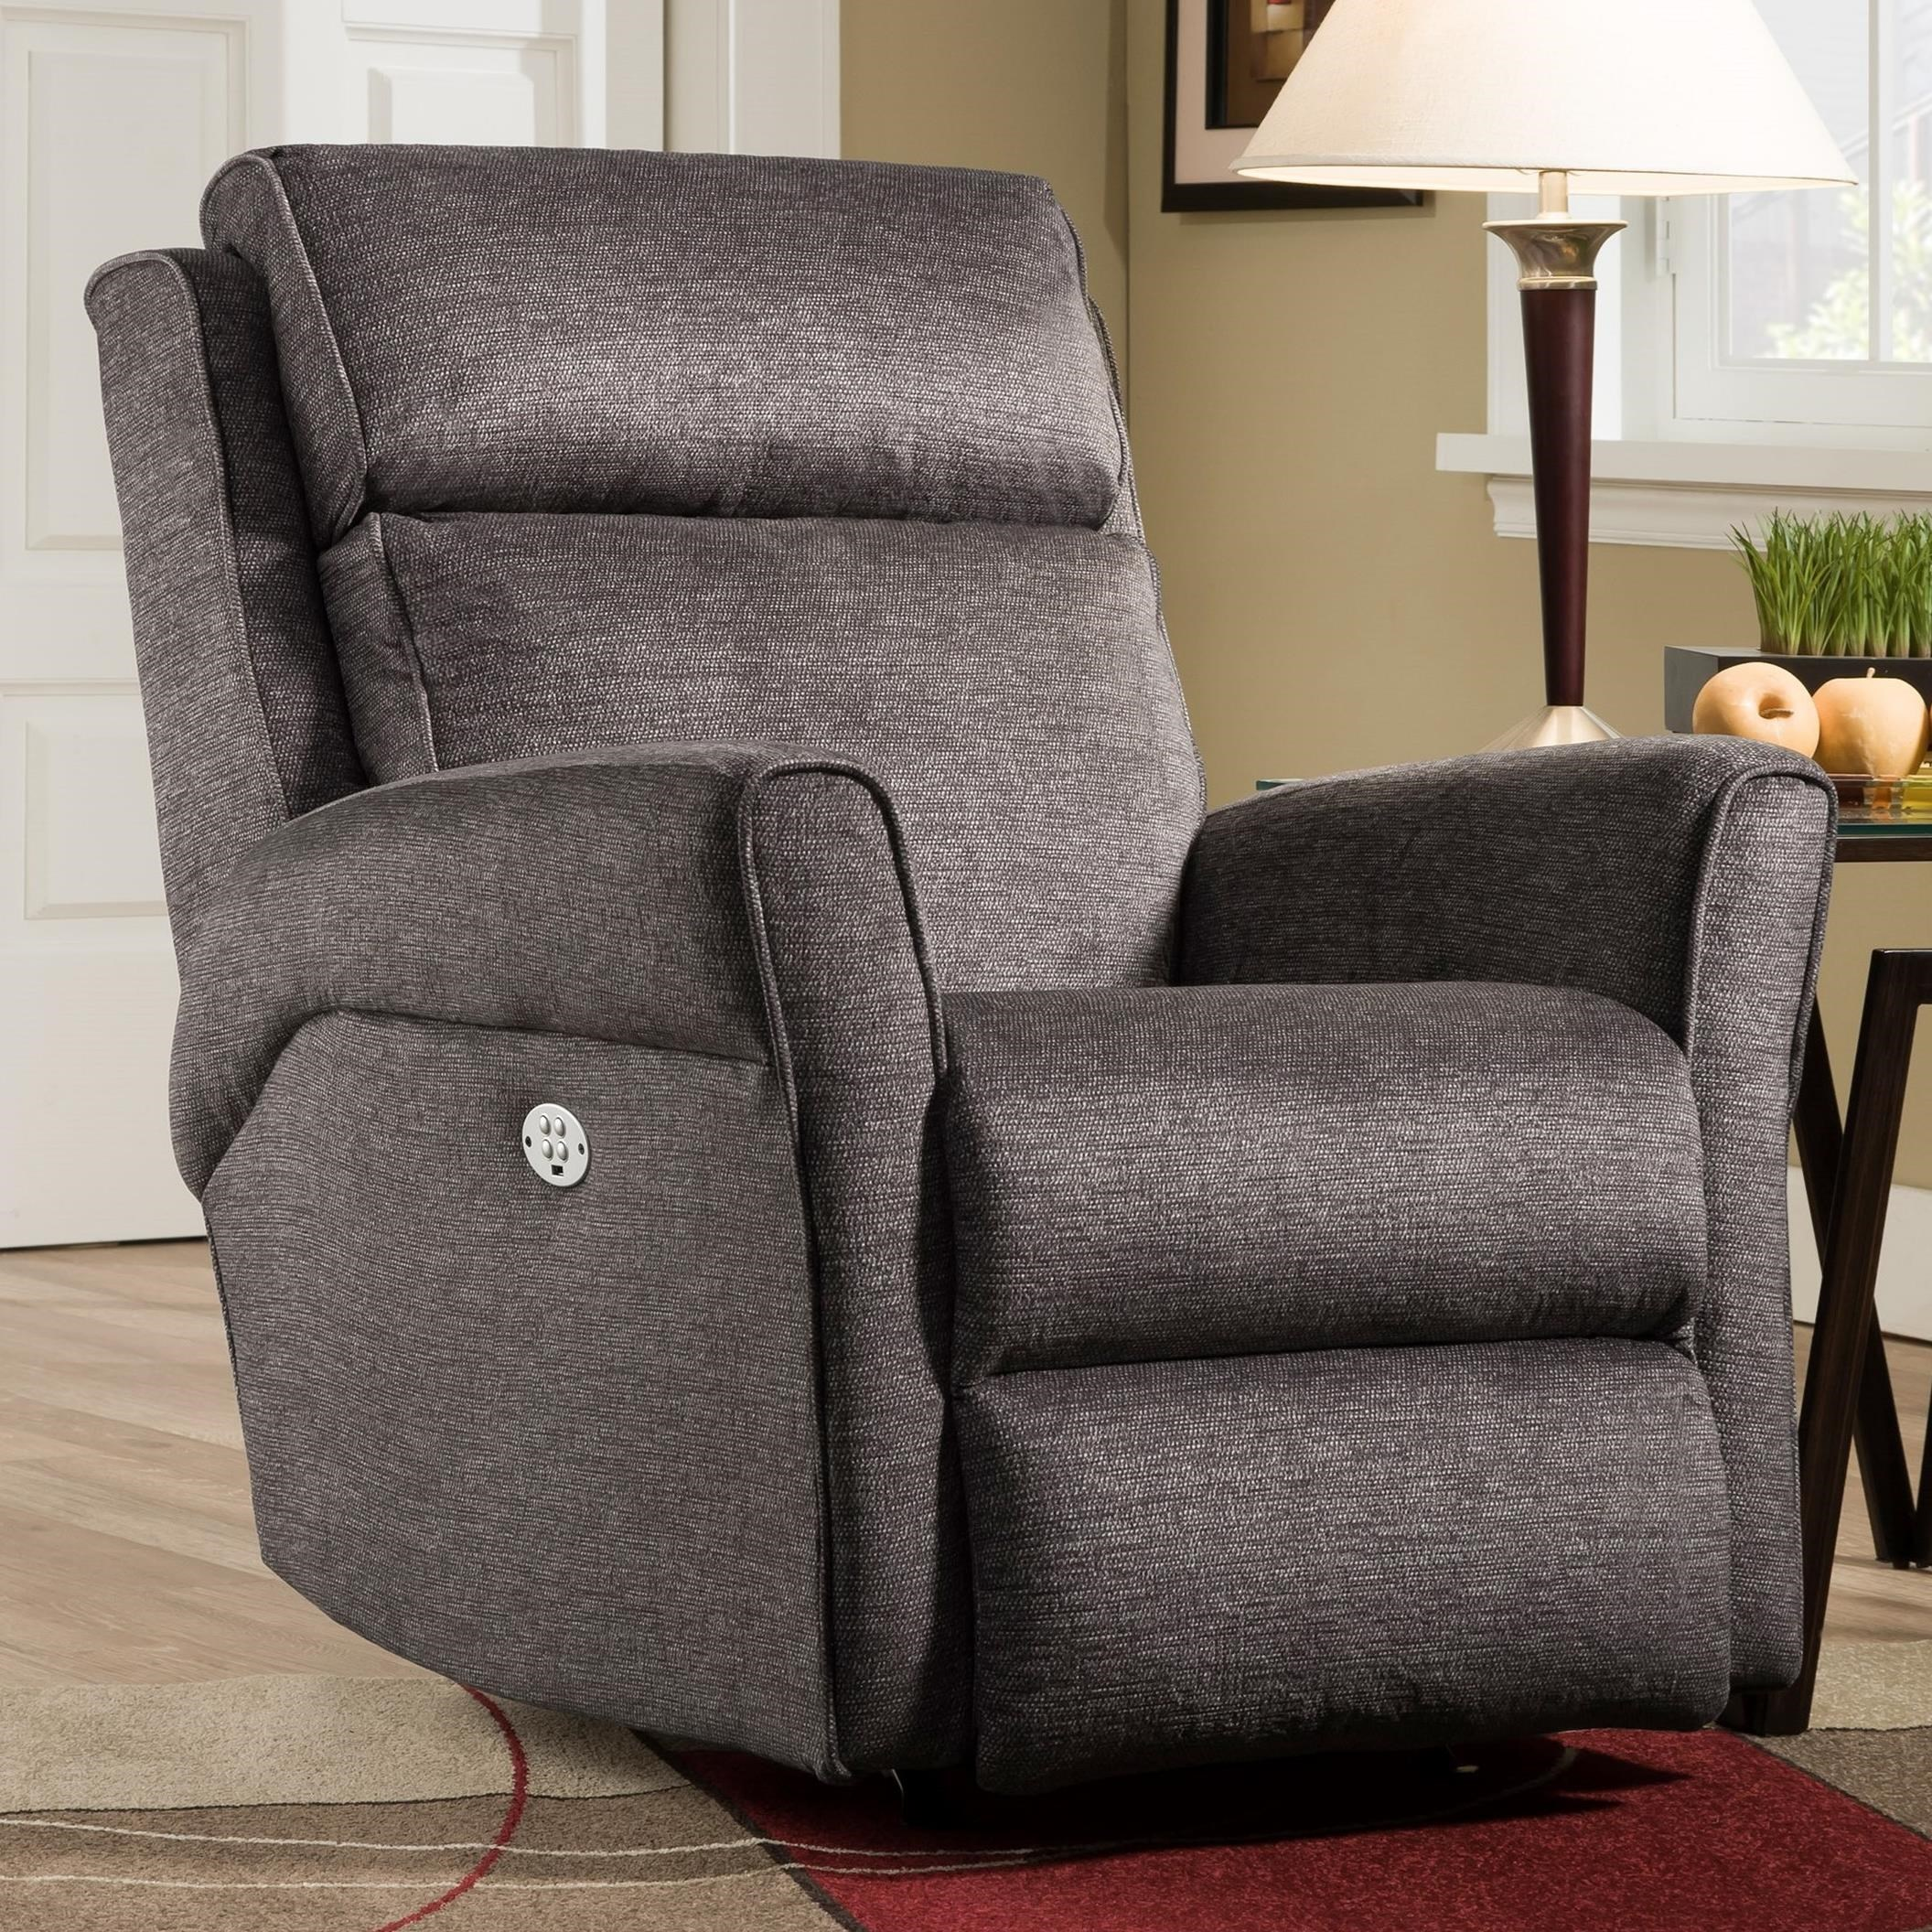 southern motion recliners radiate wall hugger recliner wayside rh wayside furniture com Cosmo Southern Motion Reclining Sofa Southern Motion Sofas